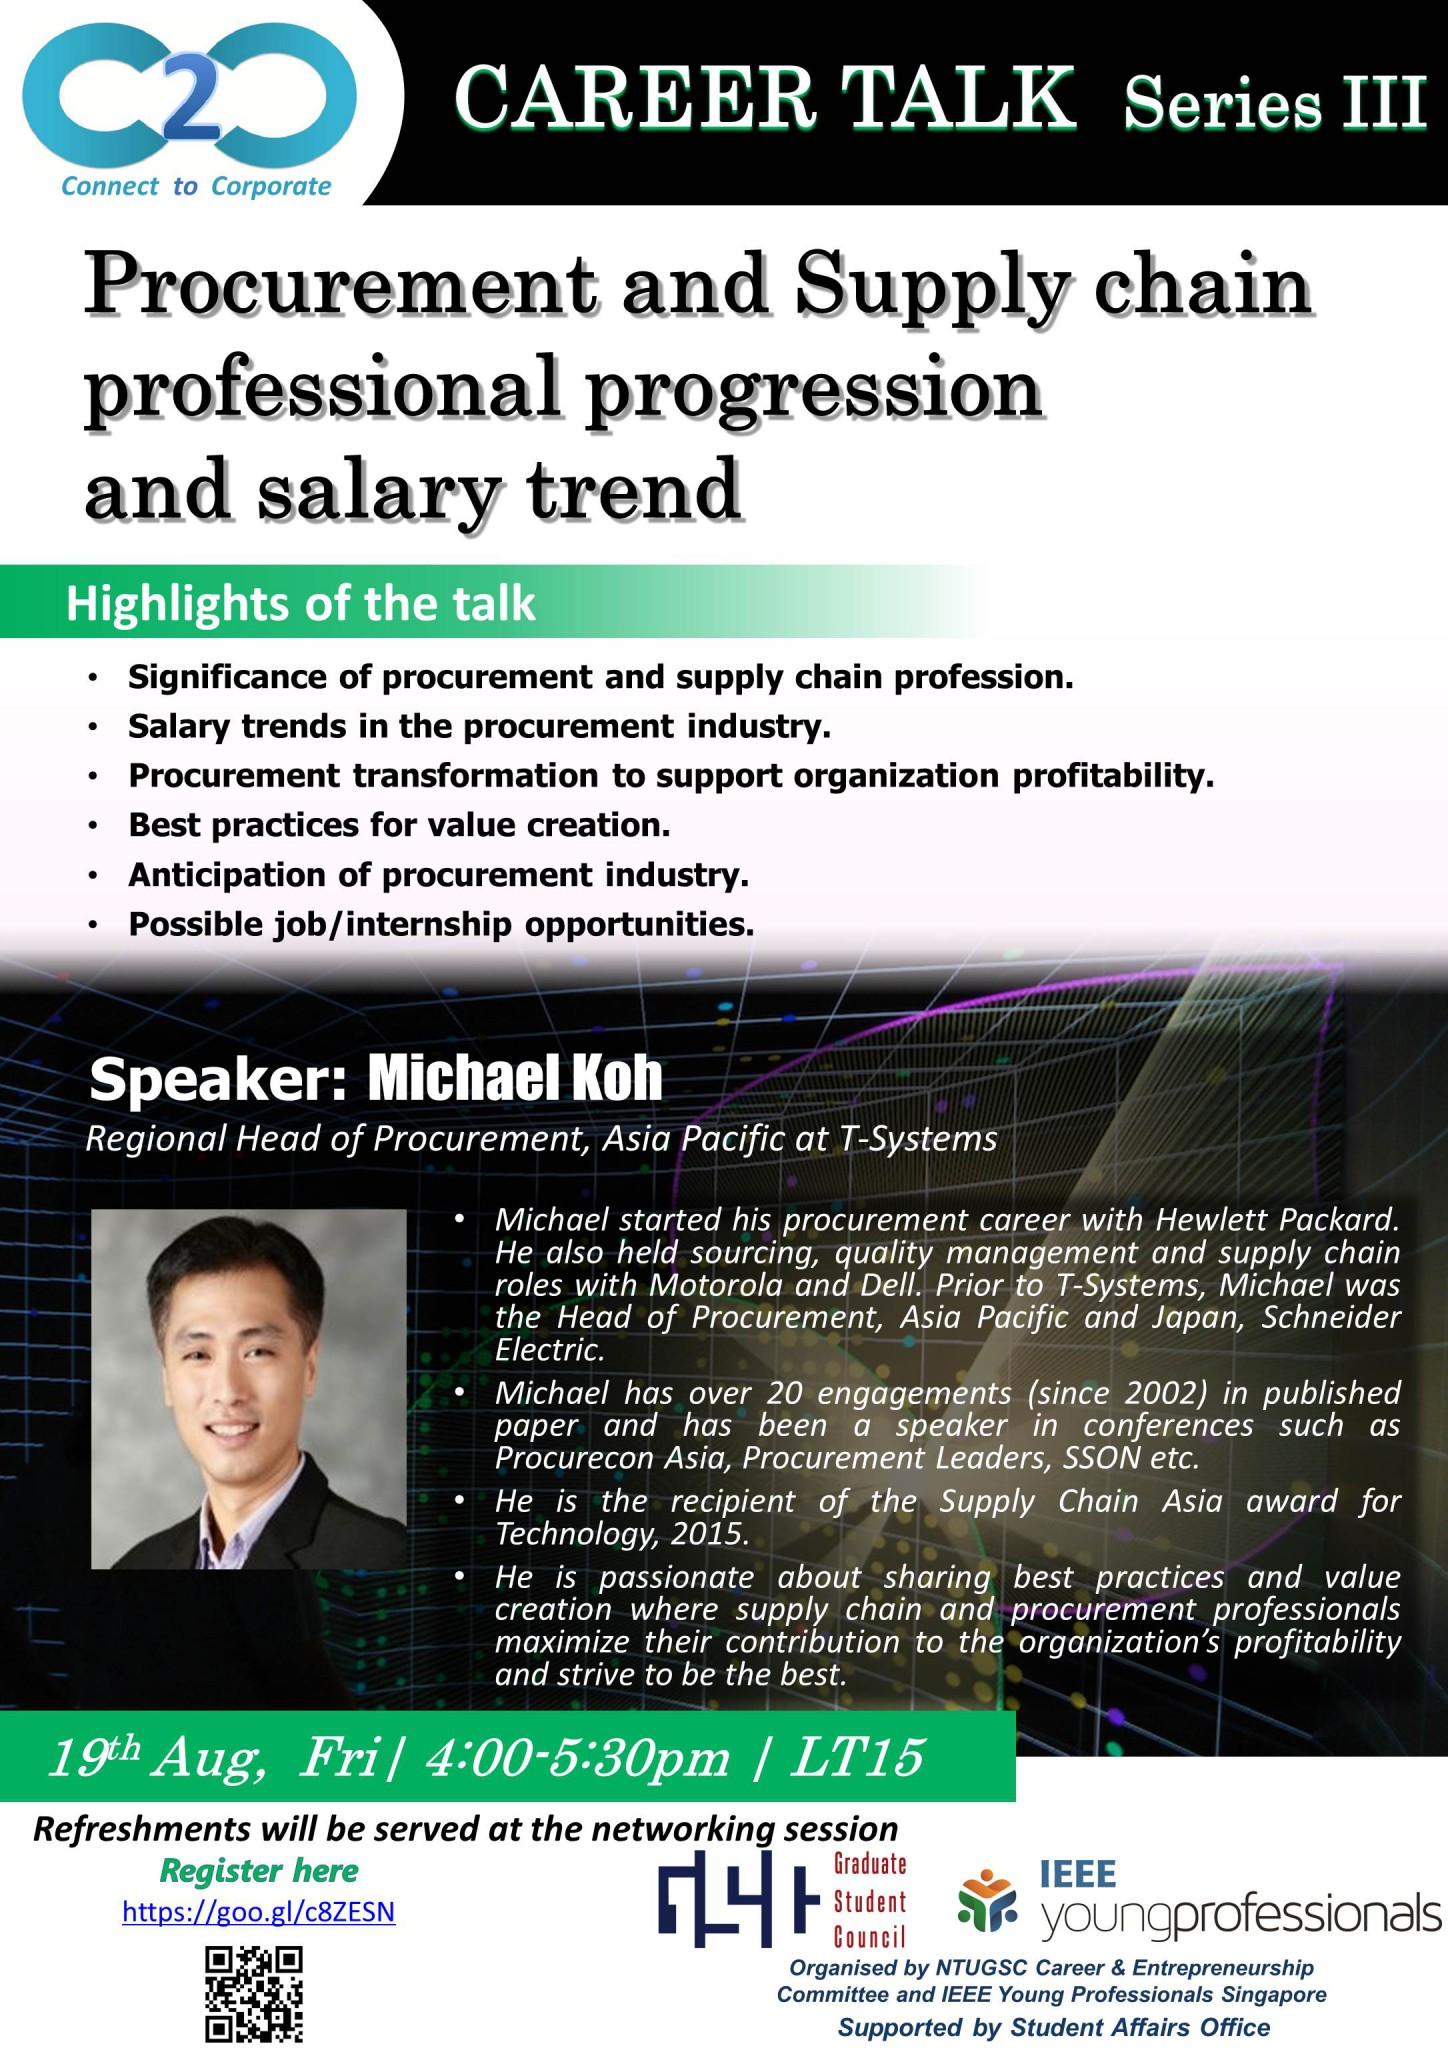 Career Talk Series III: Procurement and Supply Chain Professional